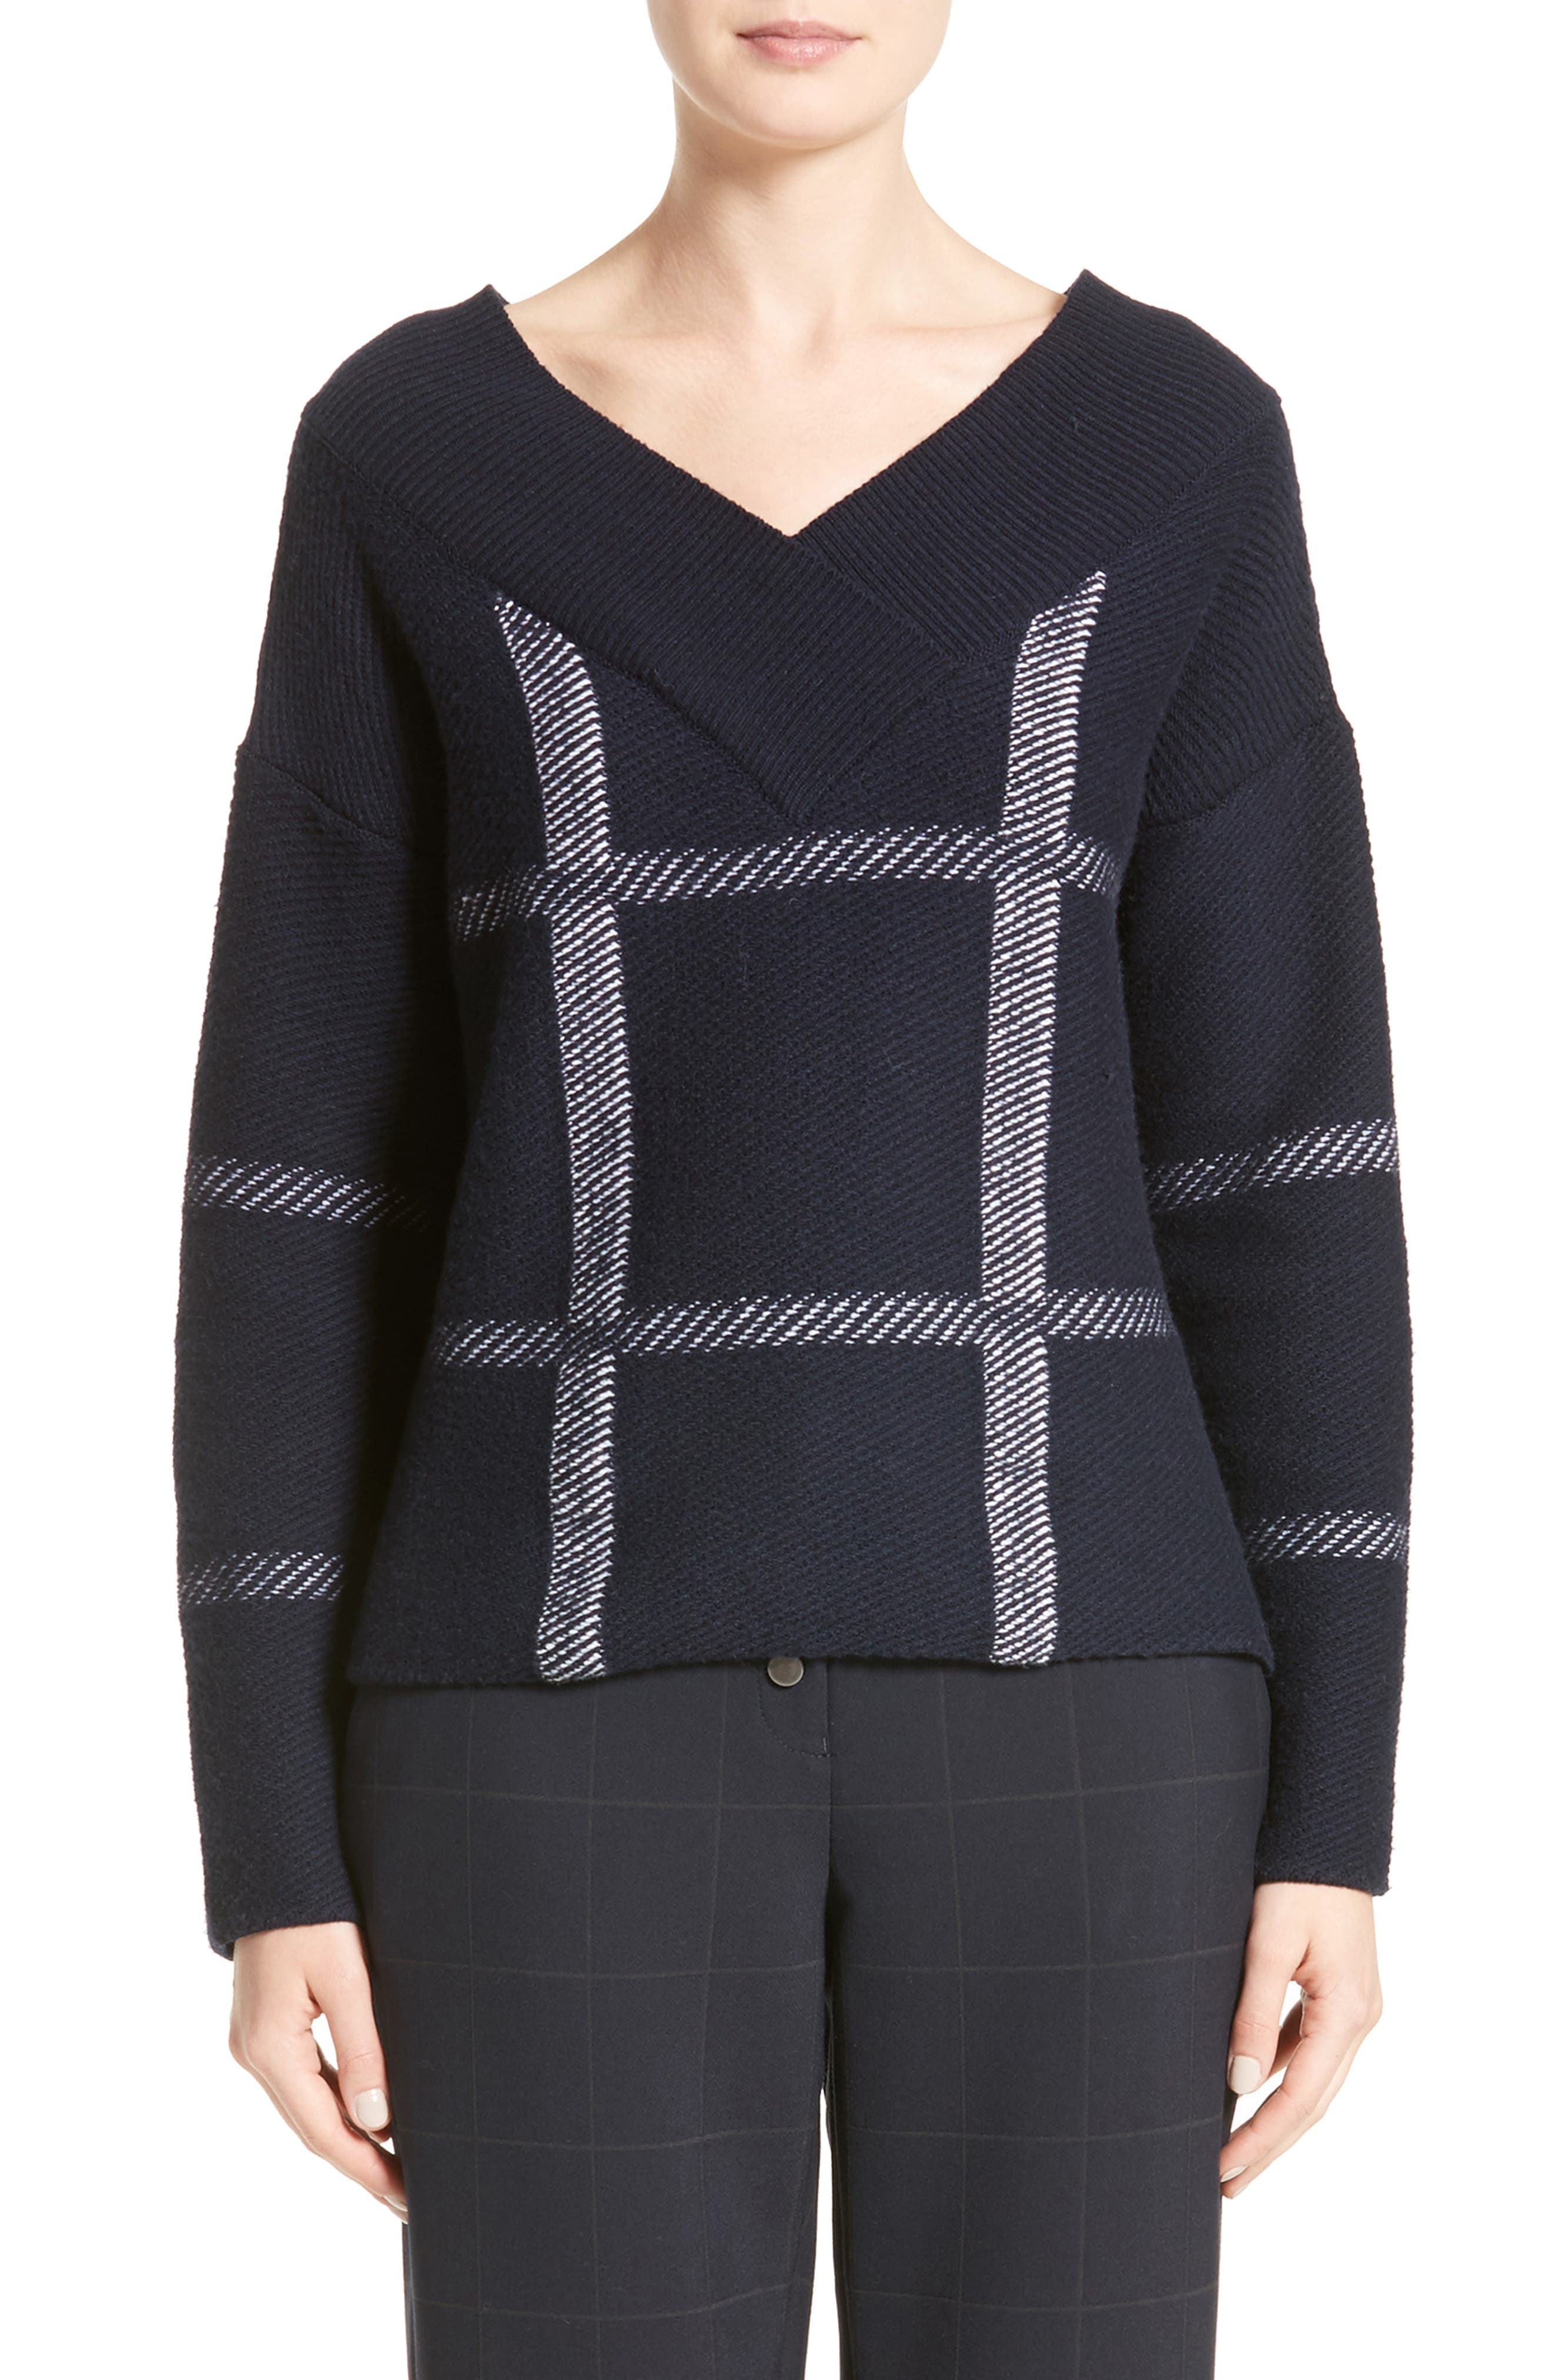 Windowpane Wool & Cashmere Sweater,                         Main,                         color, Navy Multi